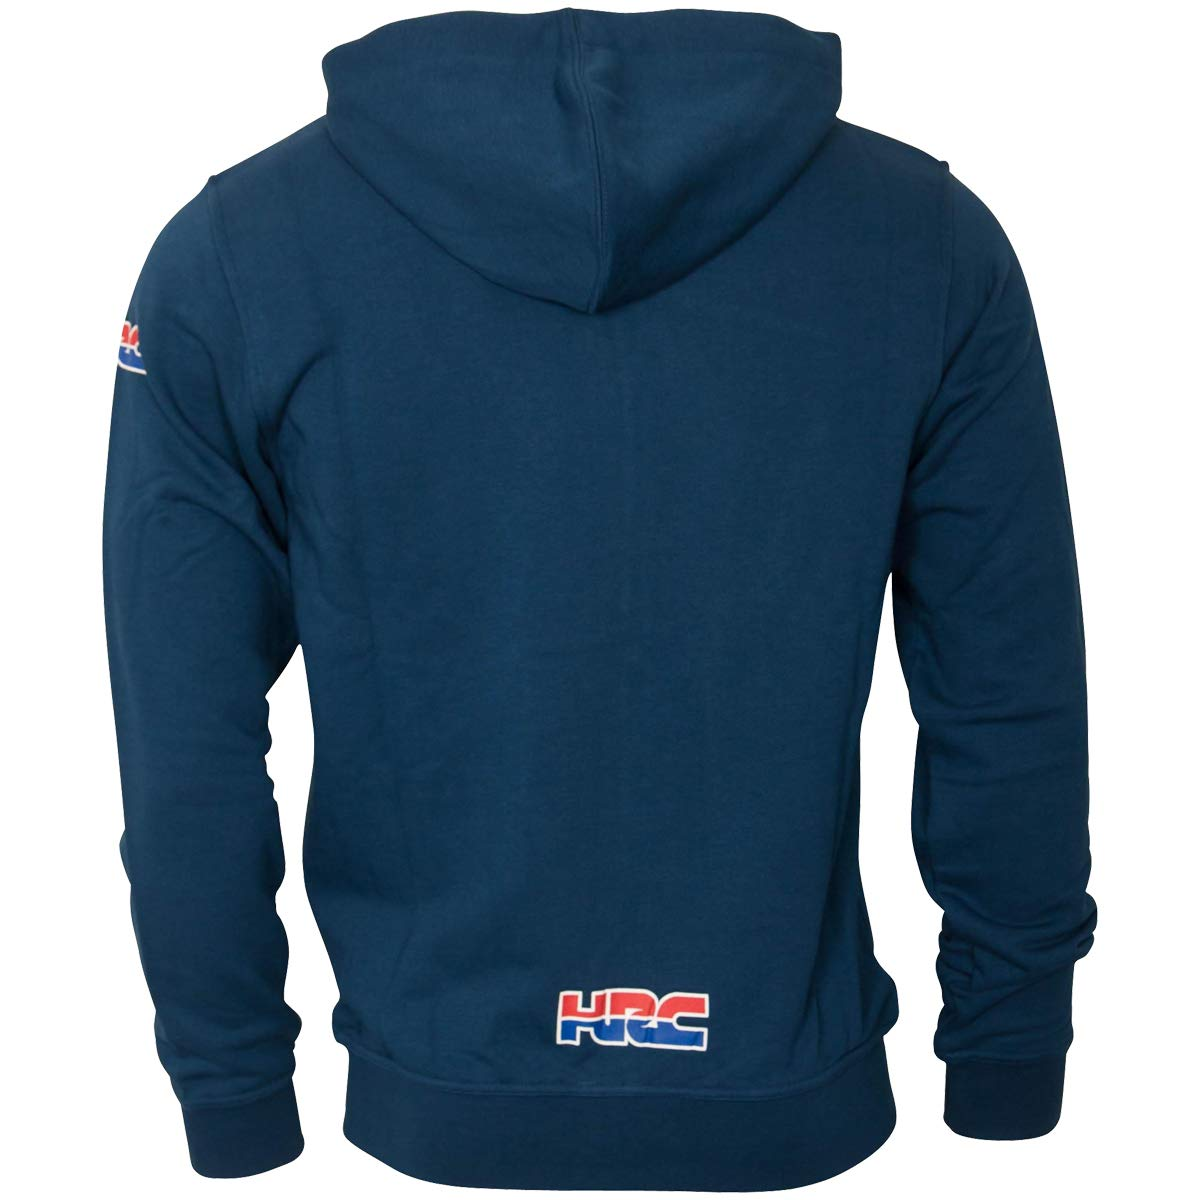 G/én/érique Honda HRC Moto GP Team Wings Bleu Sweat /à Capuche Officiel Nouveau